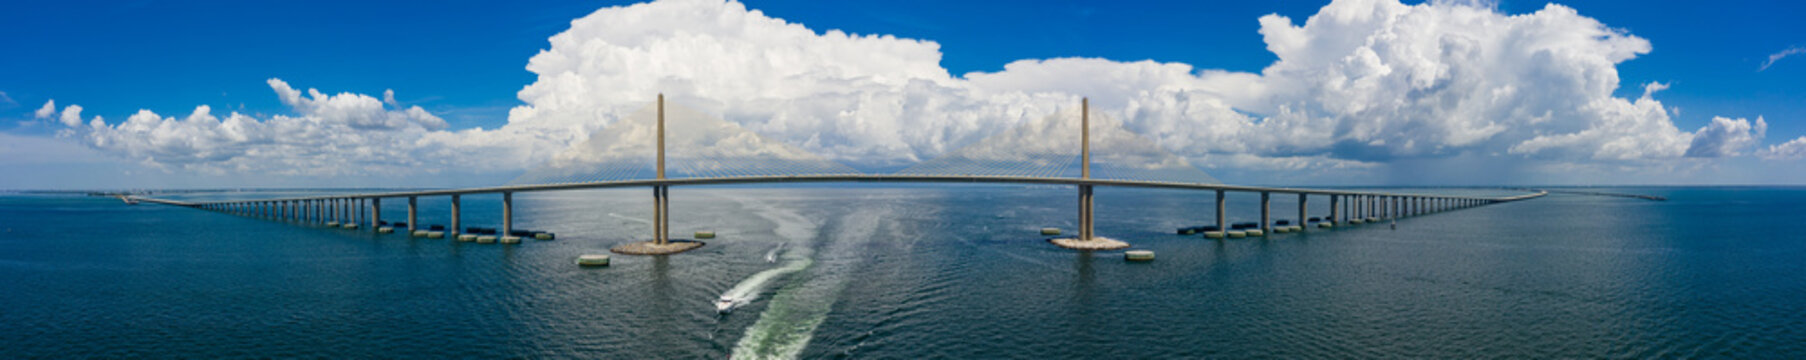 Aerial panoramic photo Sunshine Skyway cable suspended bridge suspension Tampa Bay FL USA